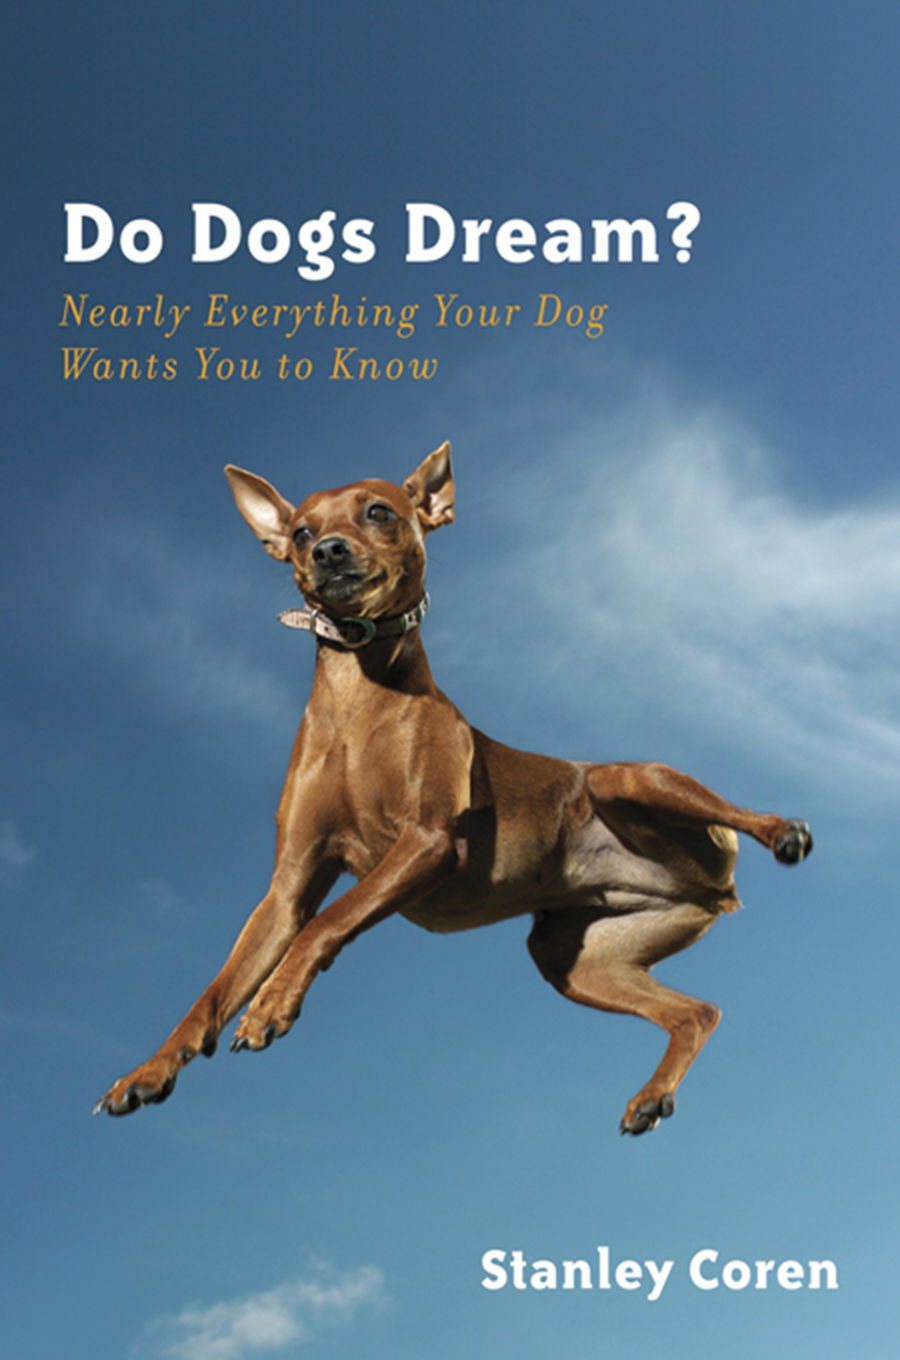 Do Dogs Dream?: Nearly Everything Your Dog Wants You to Know By: Stanley Coren